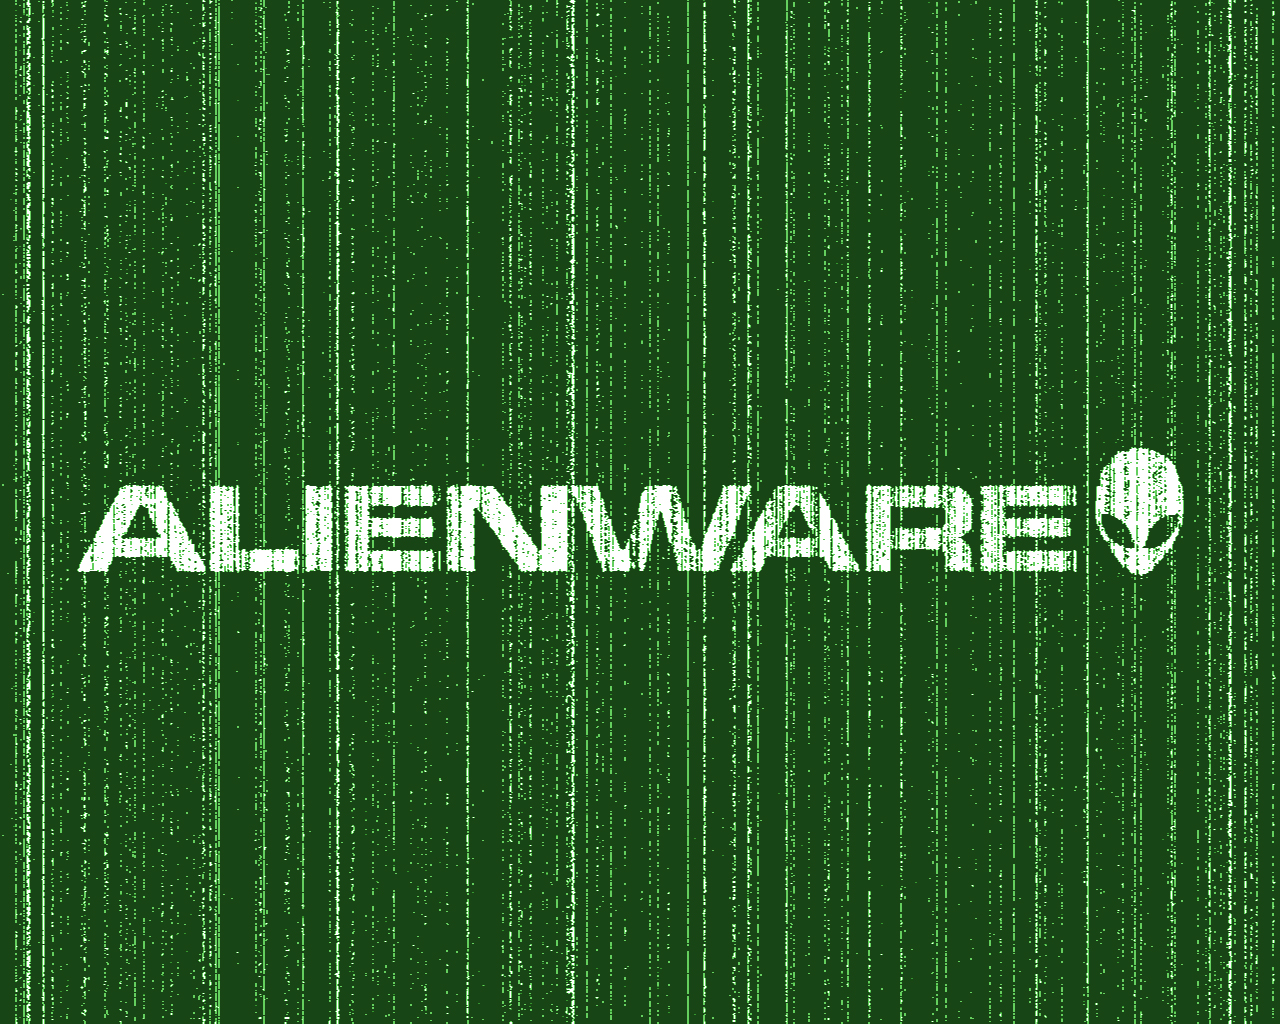 Wallpaper Hp Asus 3d Alienware Matrix Wallpapers Alienware Matrix Stock Photos